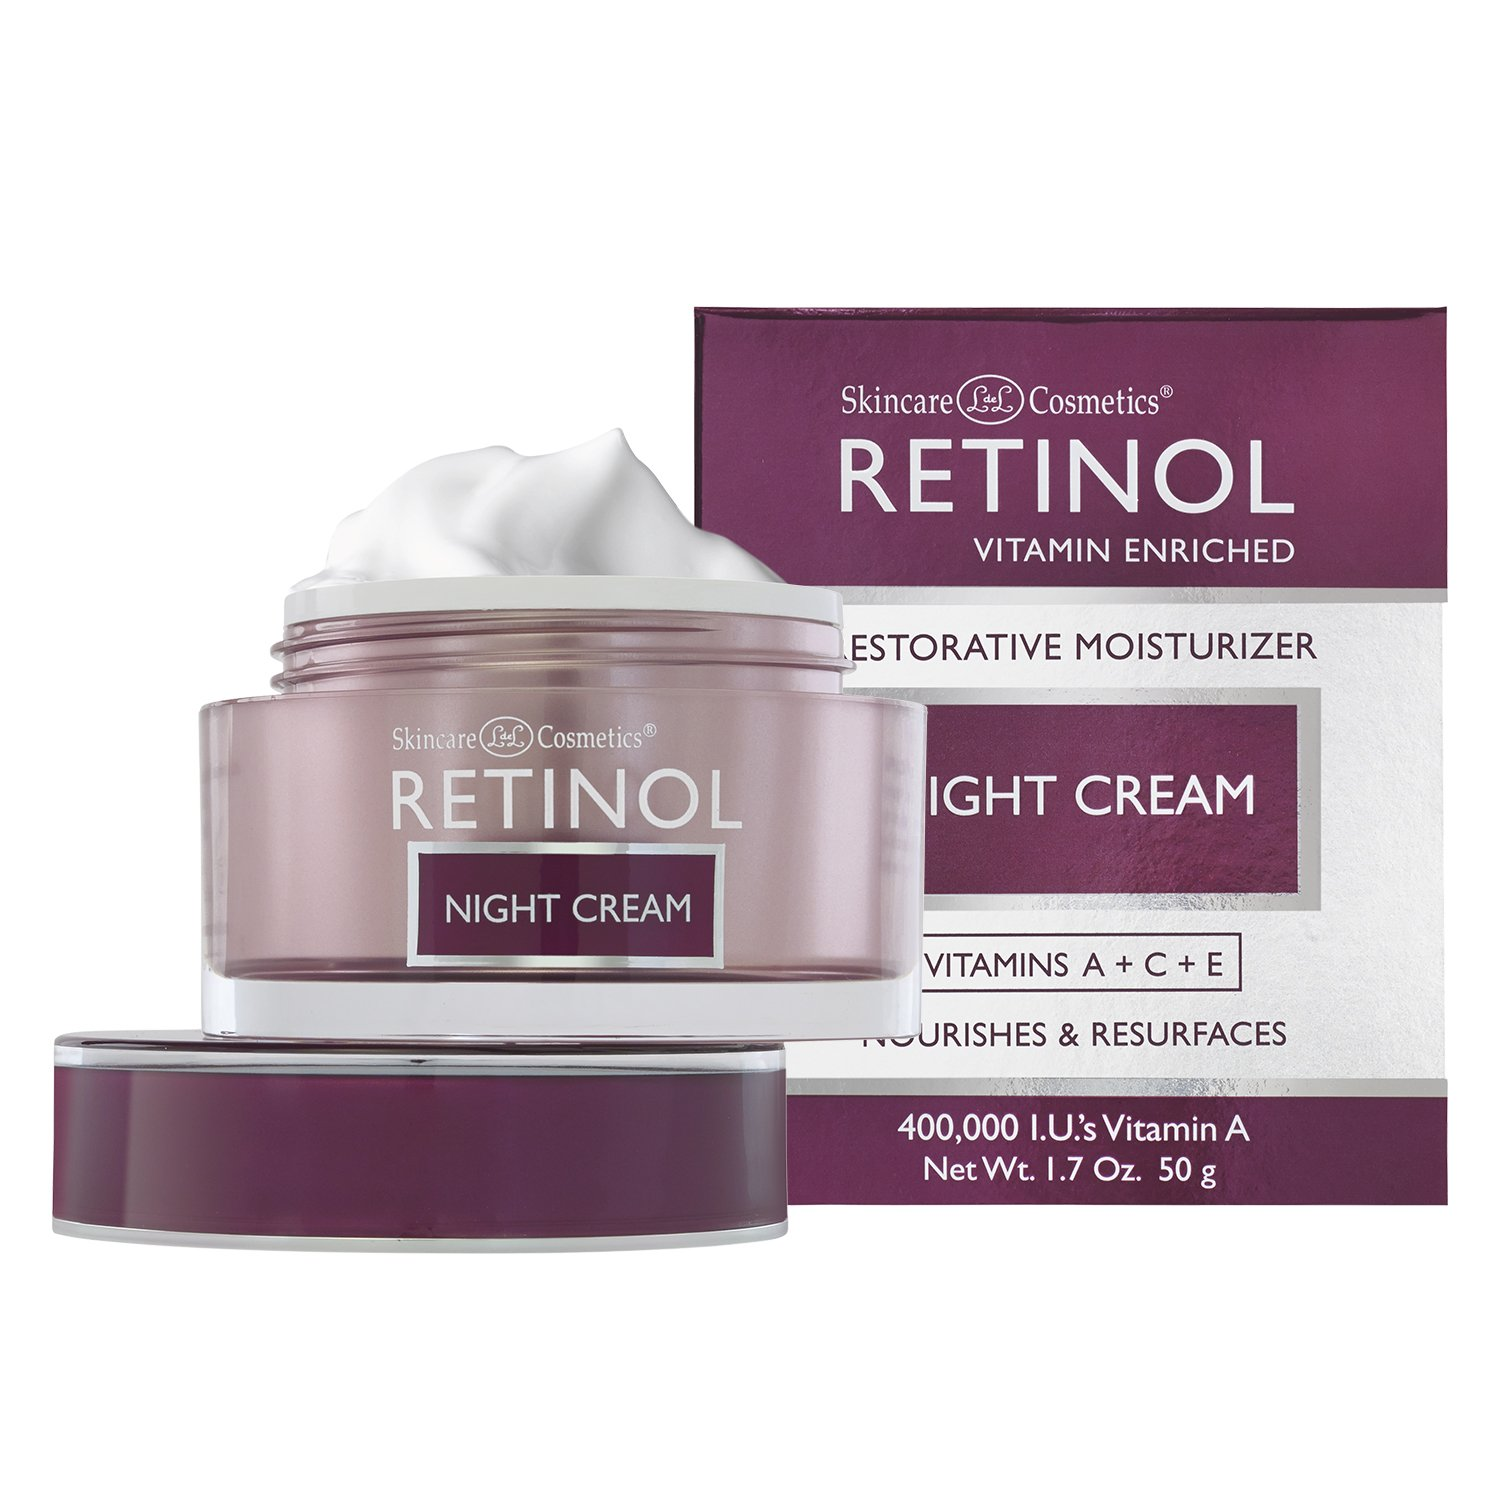 4 Pack - Skincare LdeL Cosmetics Retinol Vitamin Enriched Advanced Brightening Night Cream 1.70 oz JAYJUN Anti-Dust Intensive Cream 50ML